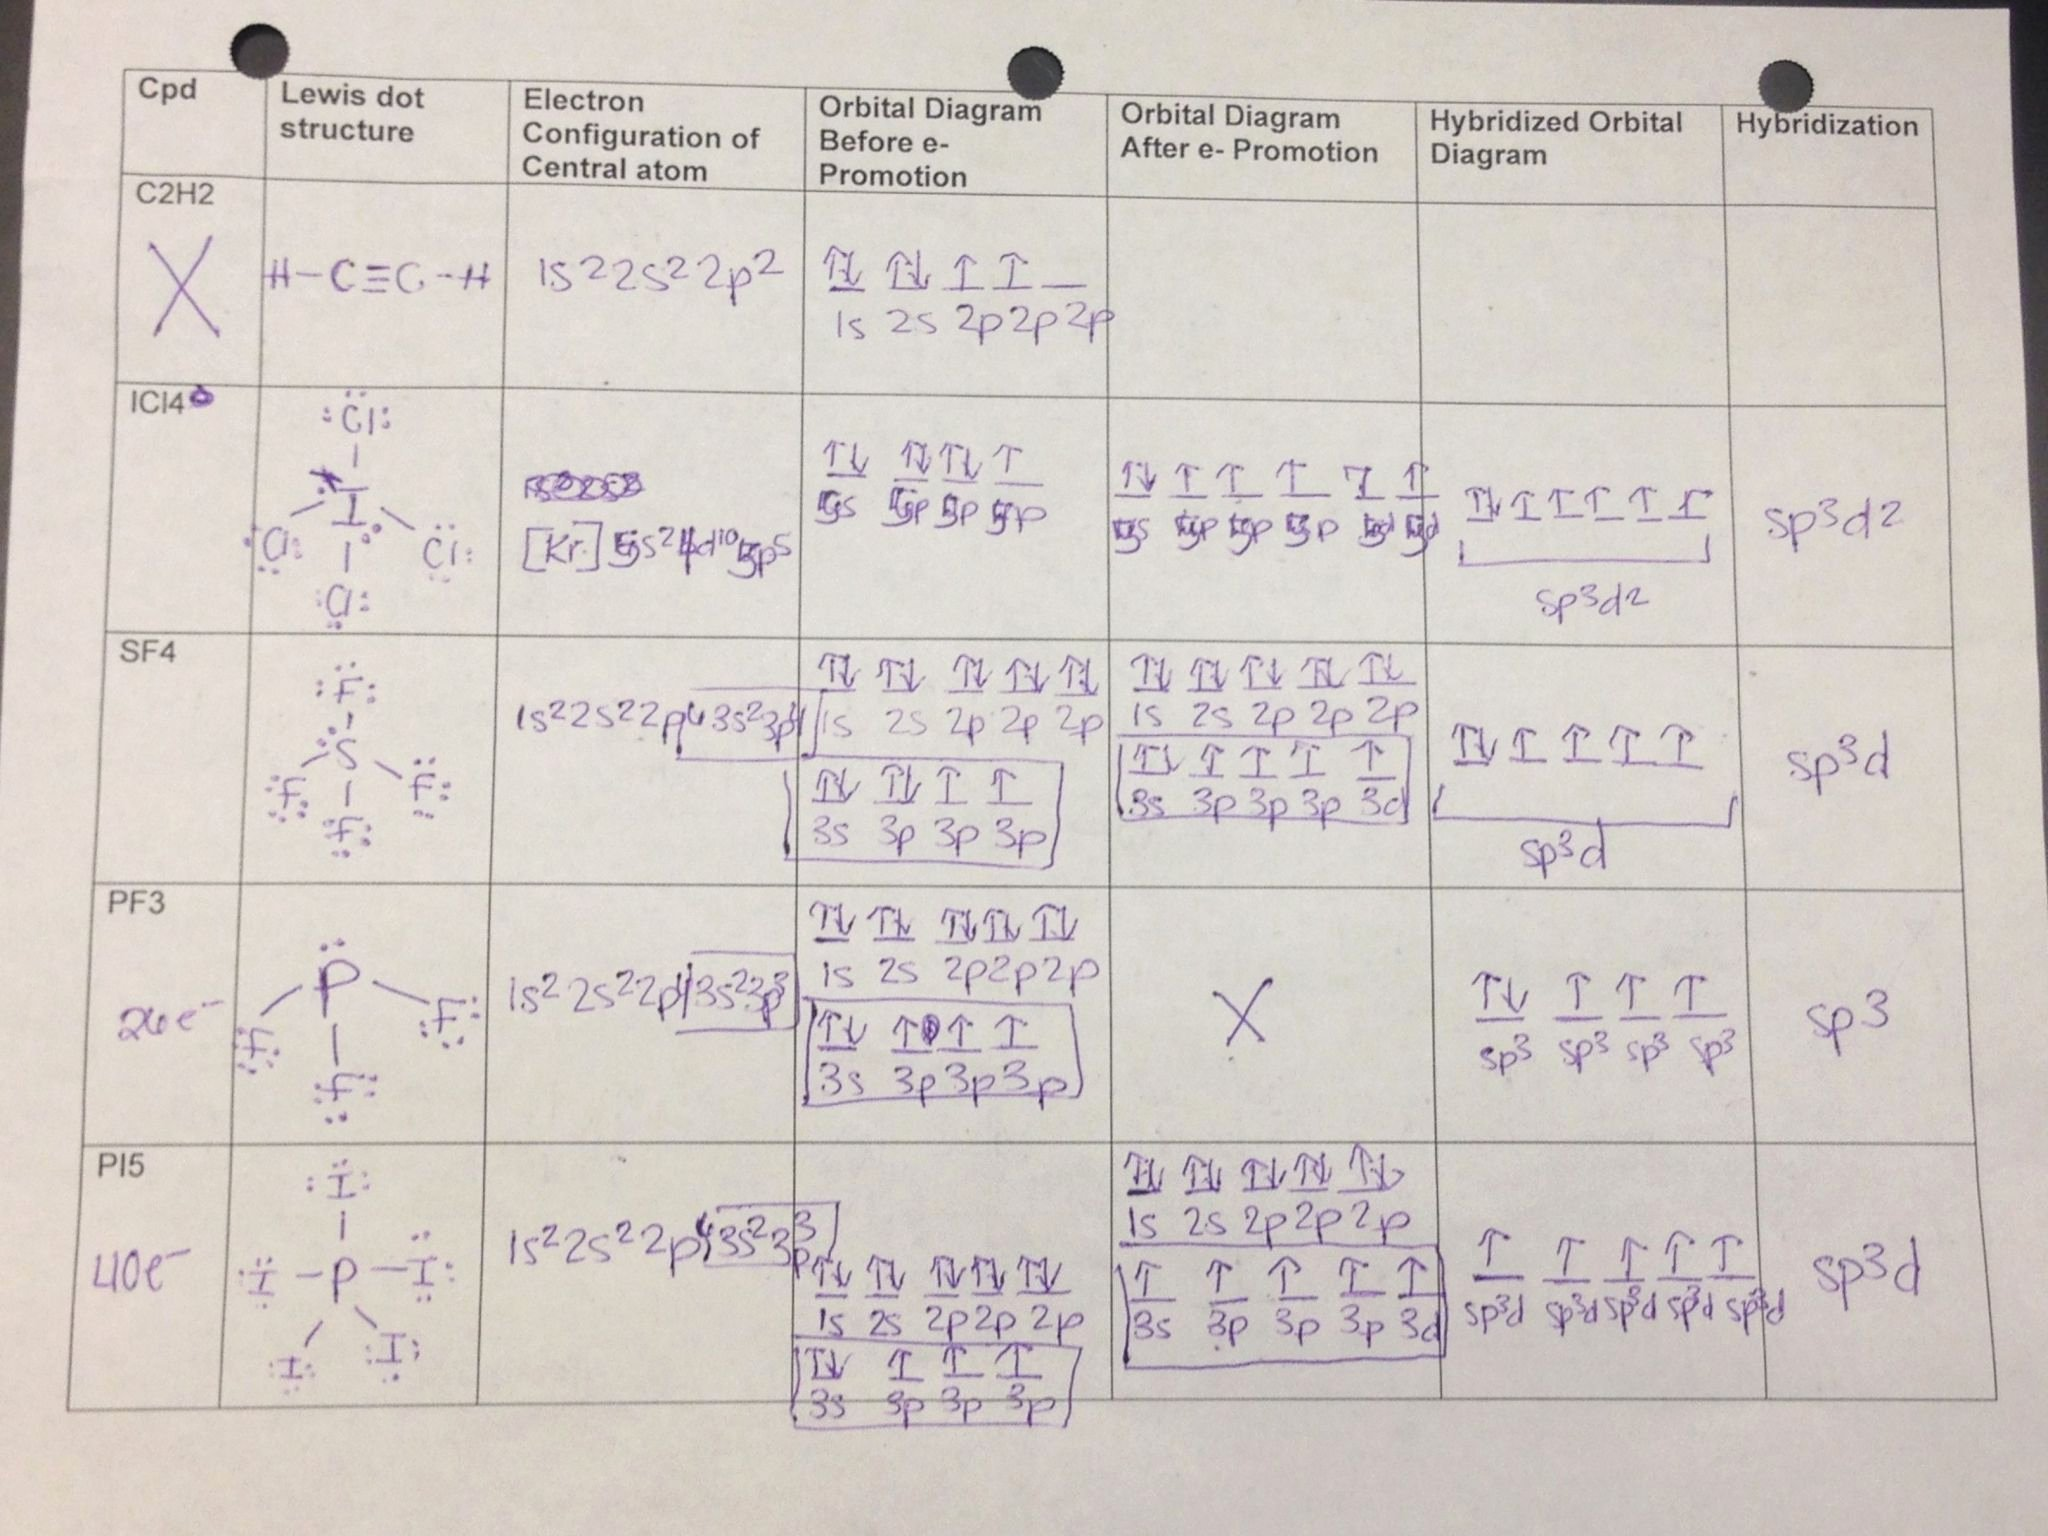 Overview Chemical Bonds Worksheet Answers Unique Lewis Dot Structures Worksheet 1 Answer Key